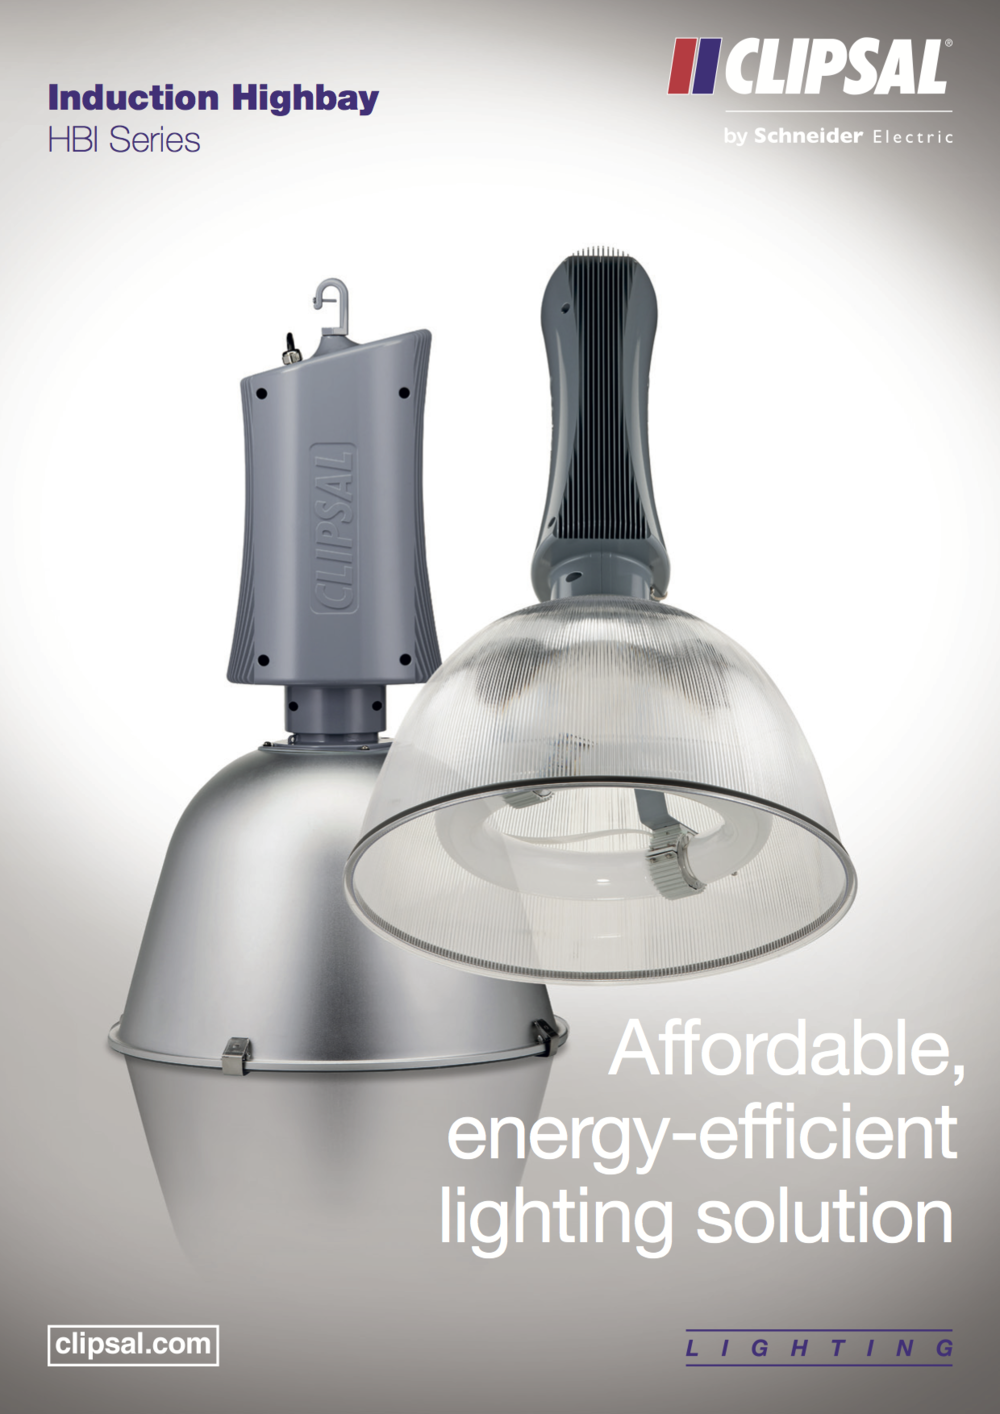 HBI Series Induction Highbay. Affordable, energy-efficient lighting solution.  Click to view brochure.